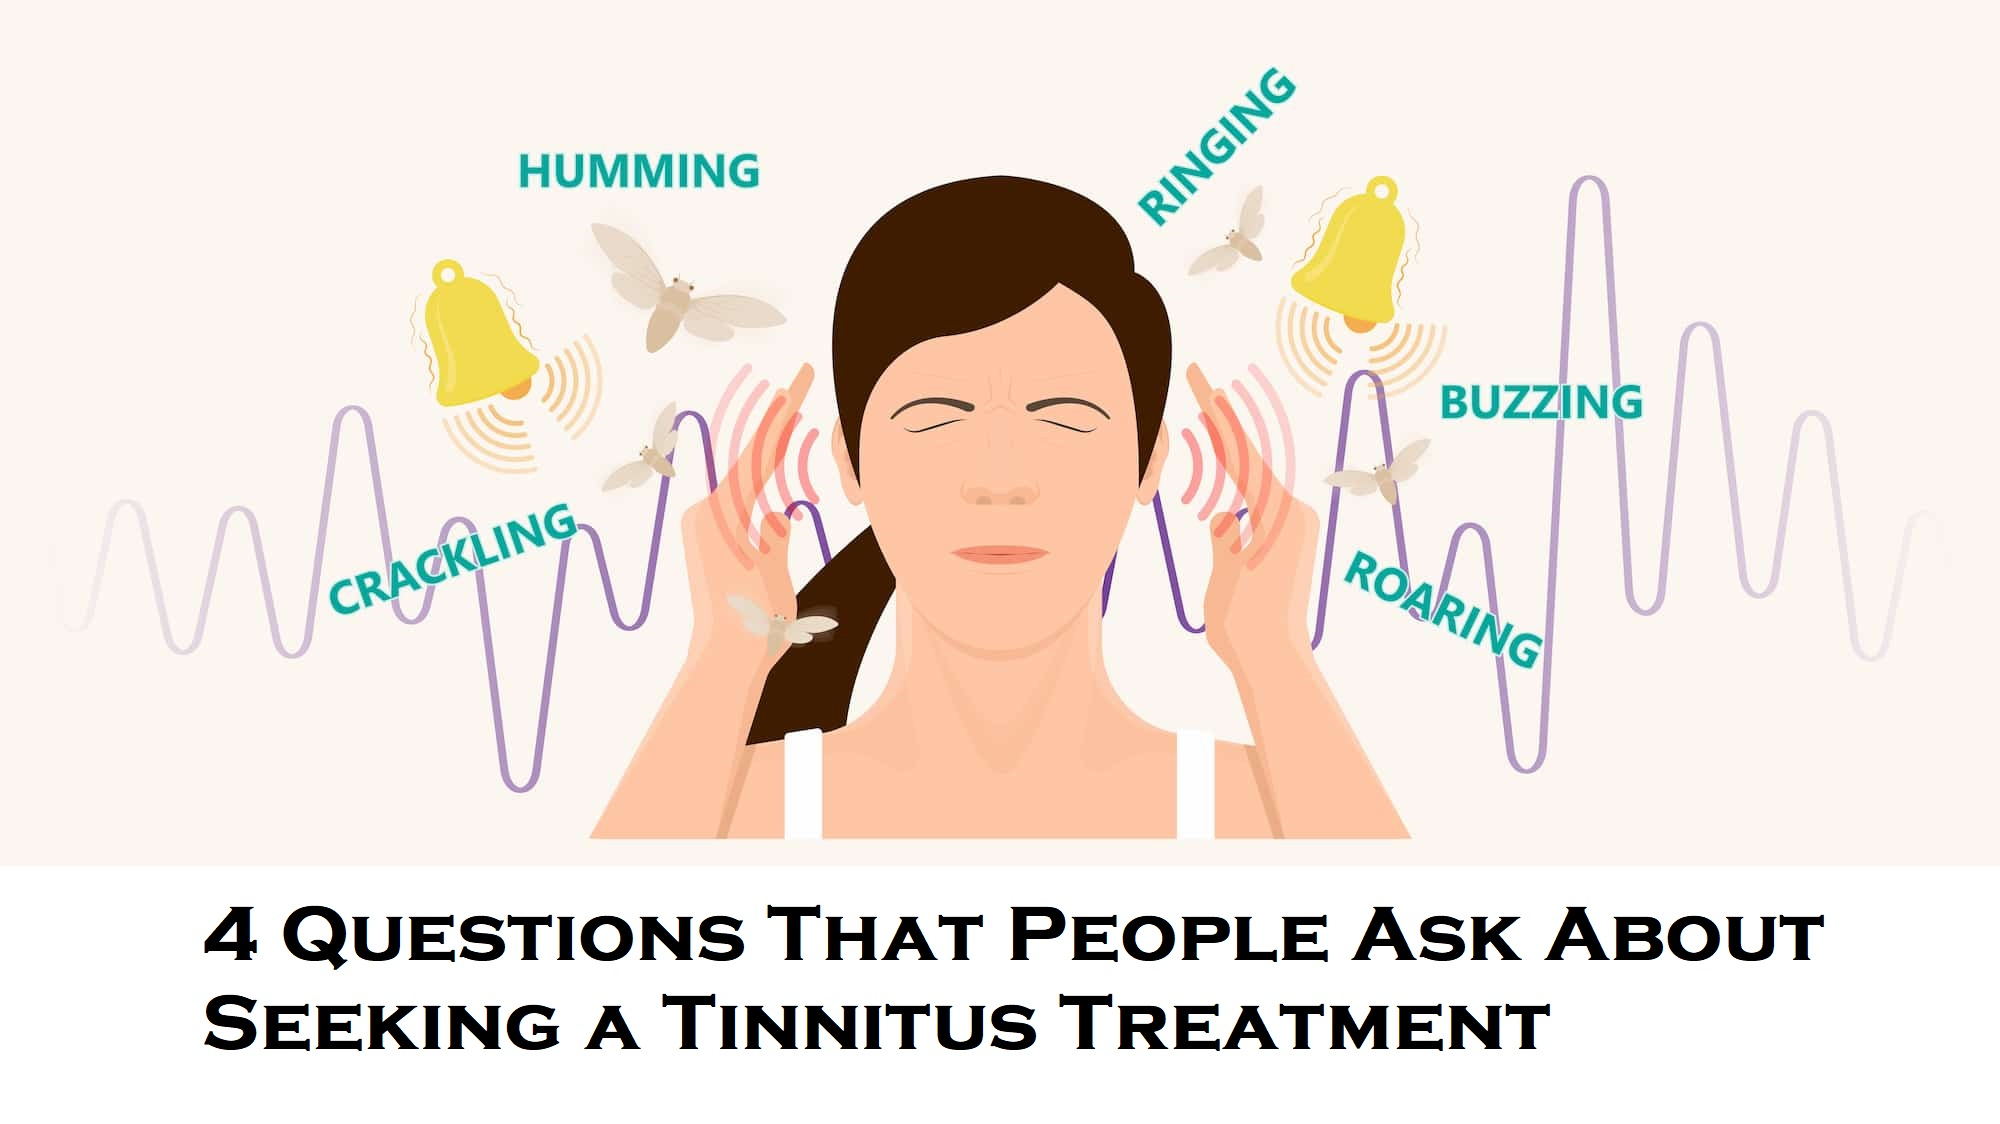 4 Questions That People Ask About Seeking a Tinnitus Treatment